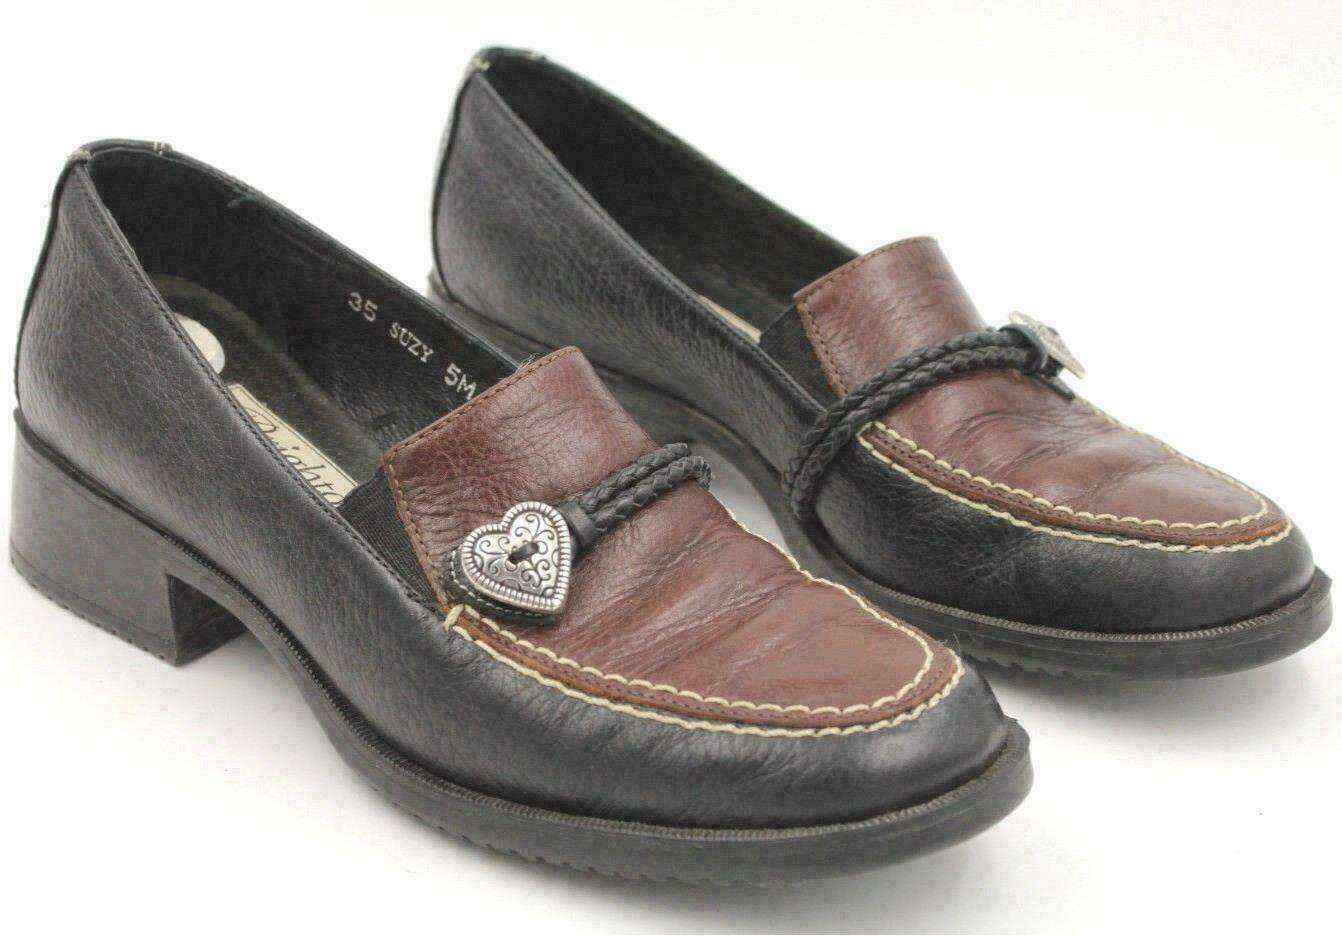 Primary image for Brighton Suzy Women Slip On Block Heel Loafers Size US 5M Black Brown Leather